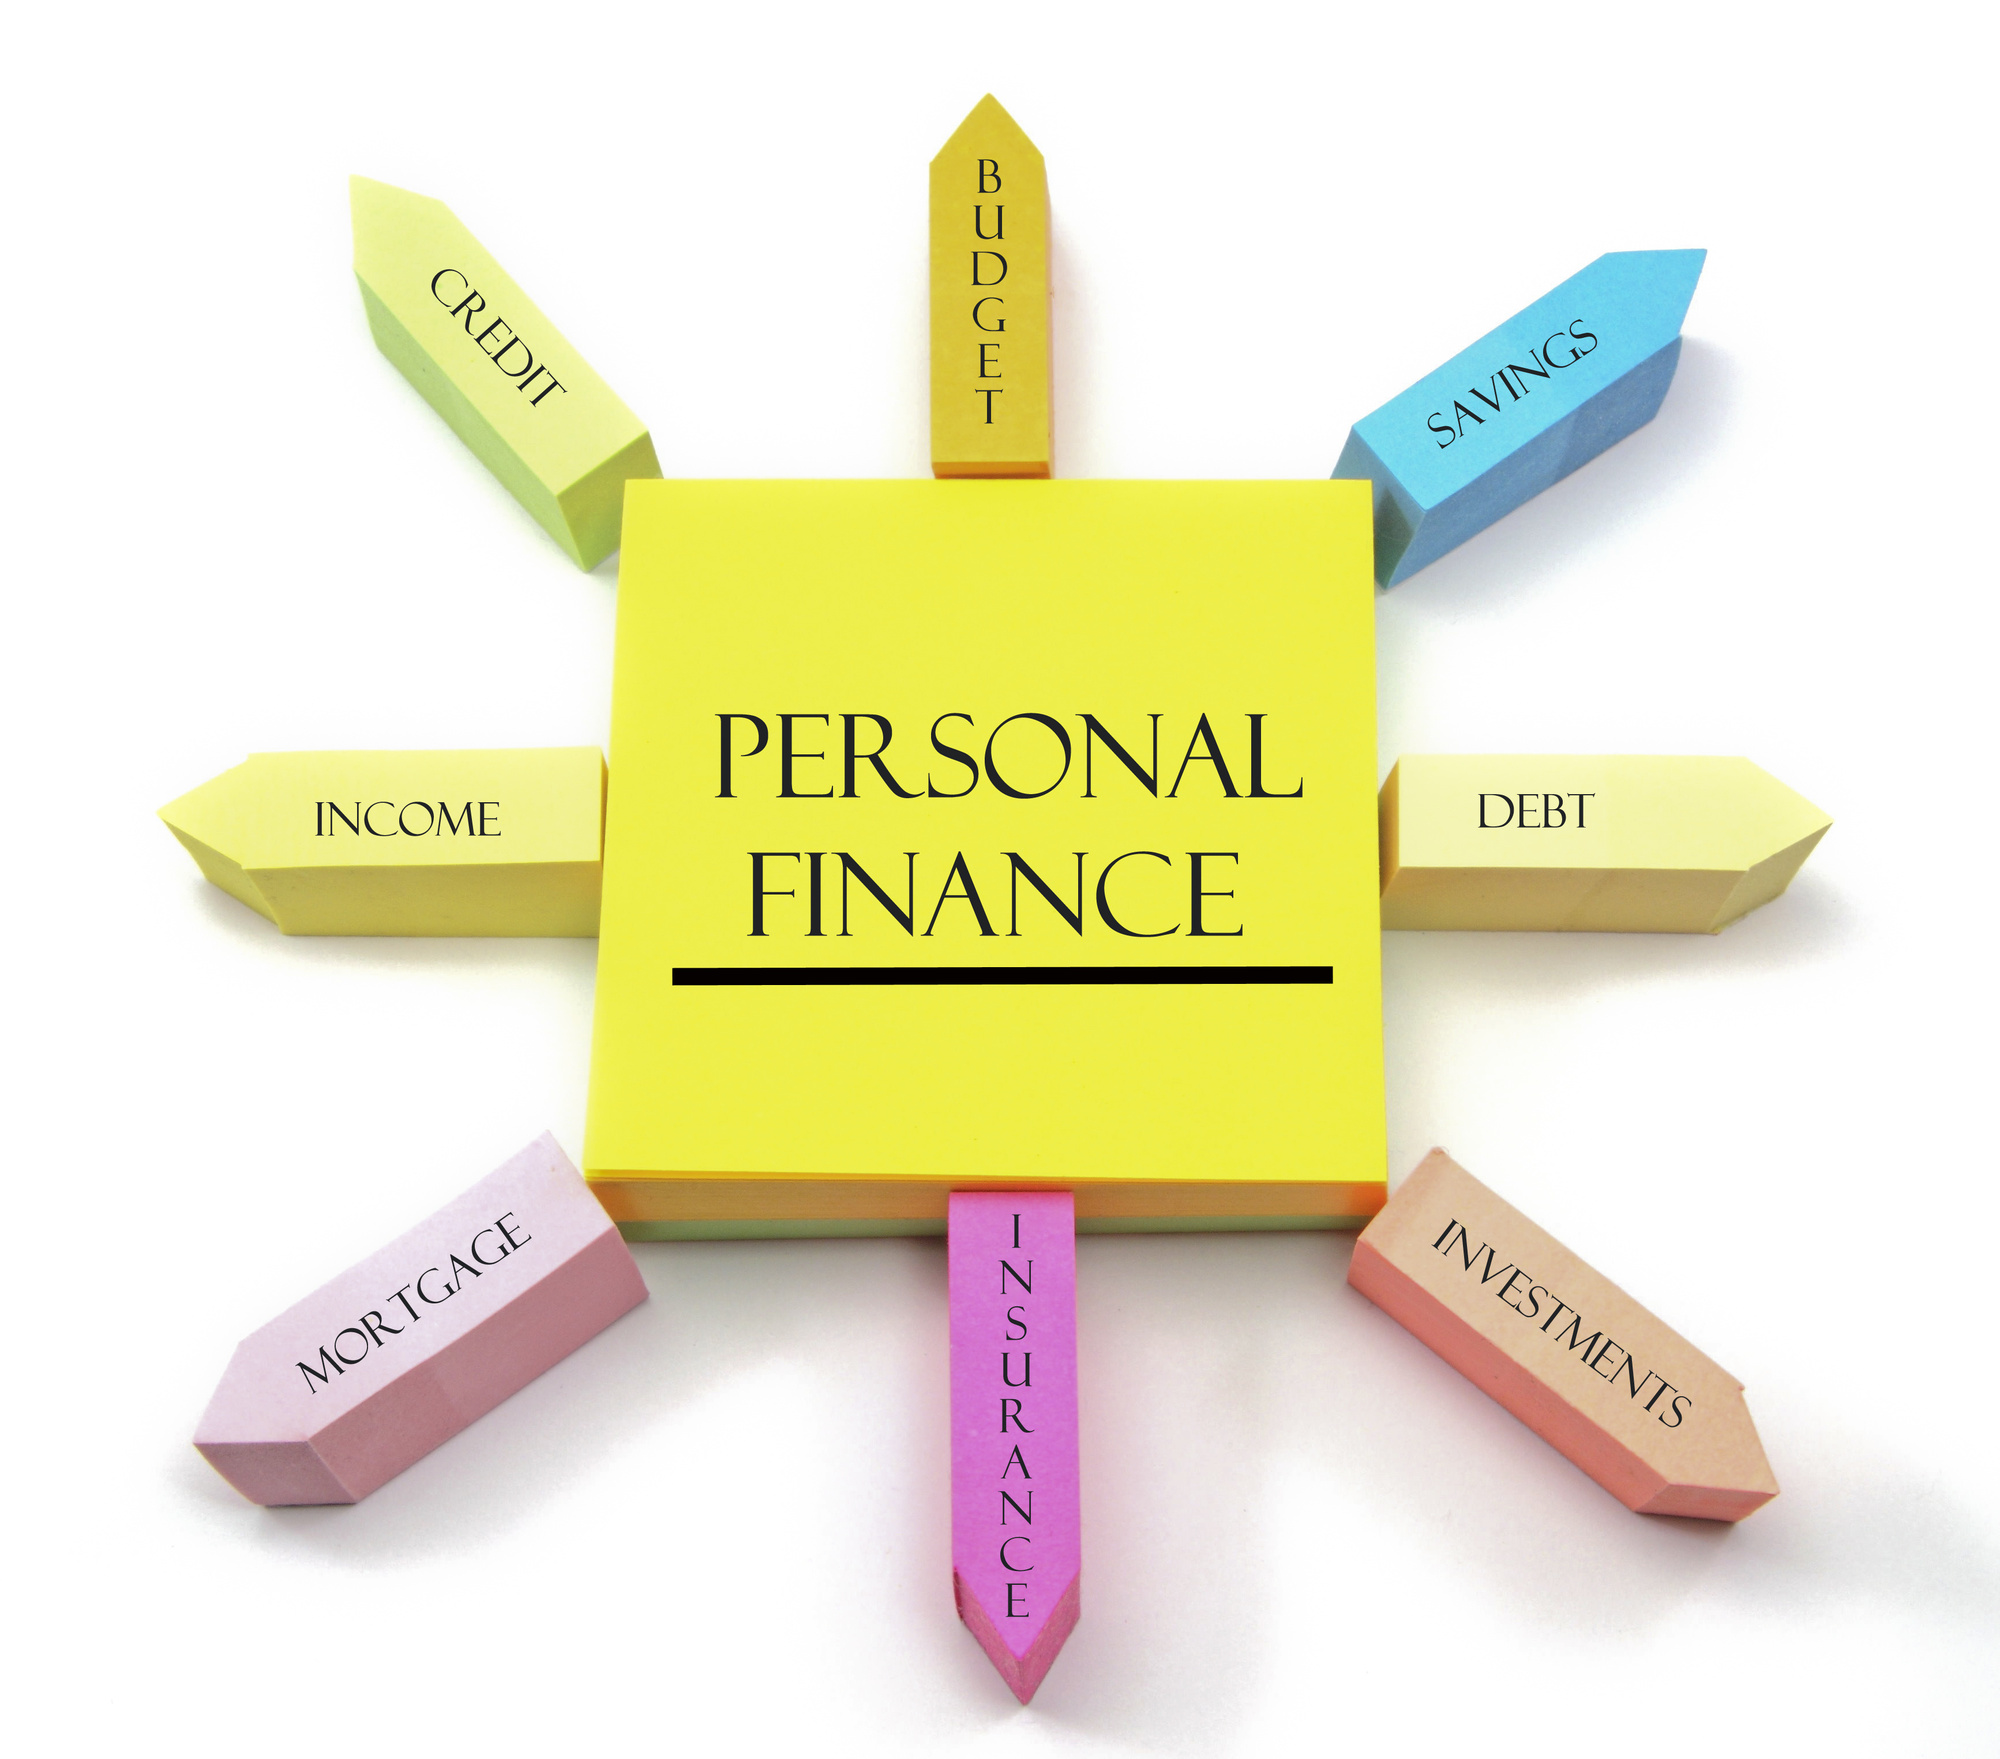 13 Personal Finance Tips To Change Your Approach To Money